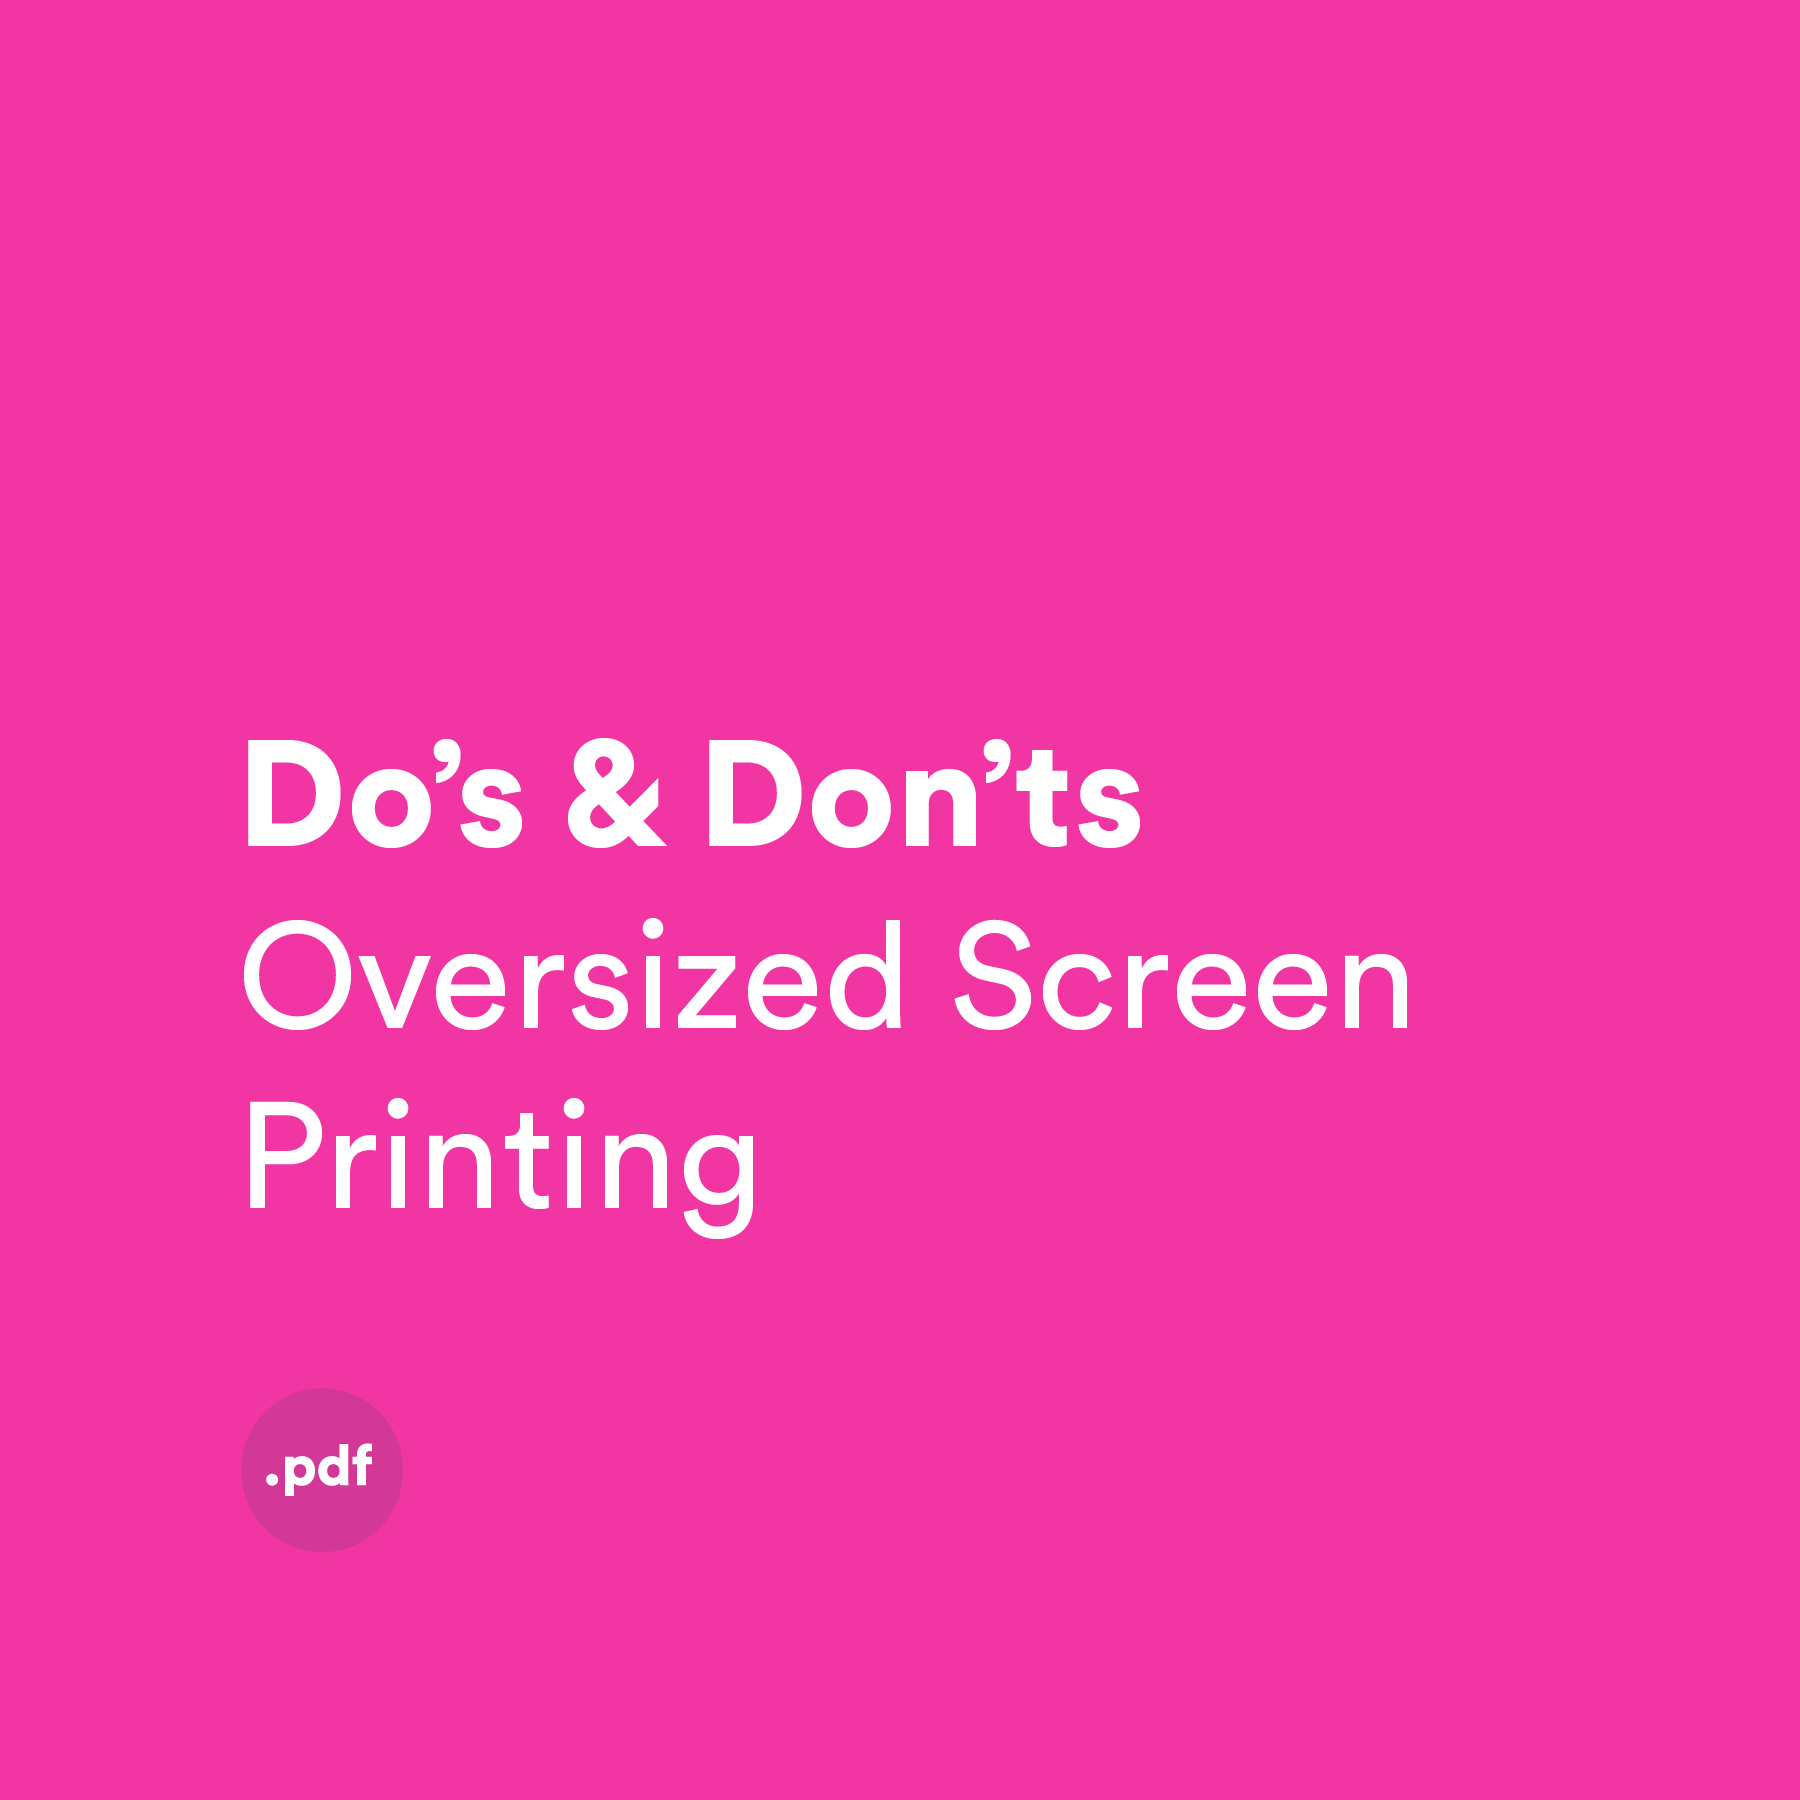 The 5 Dos & Donts of Oversized Screen Printing